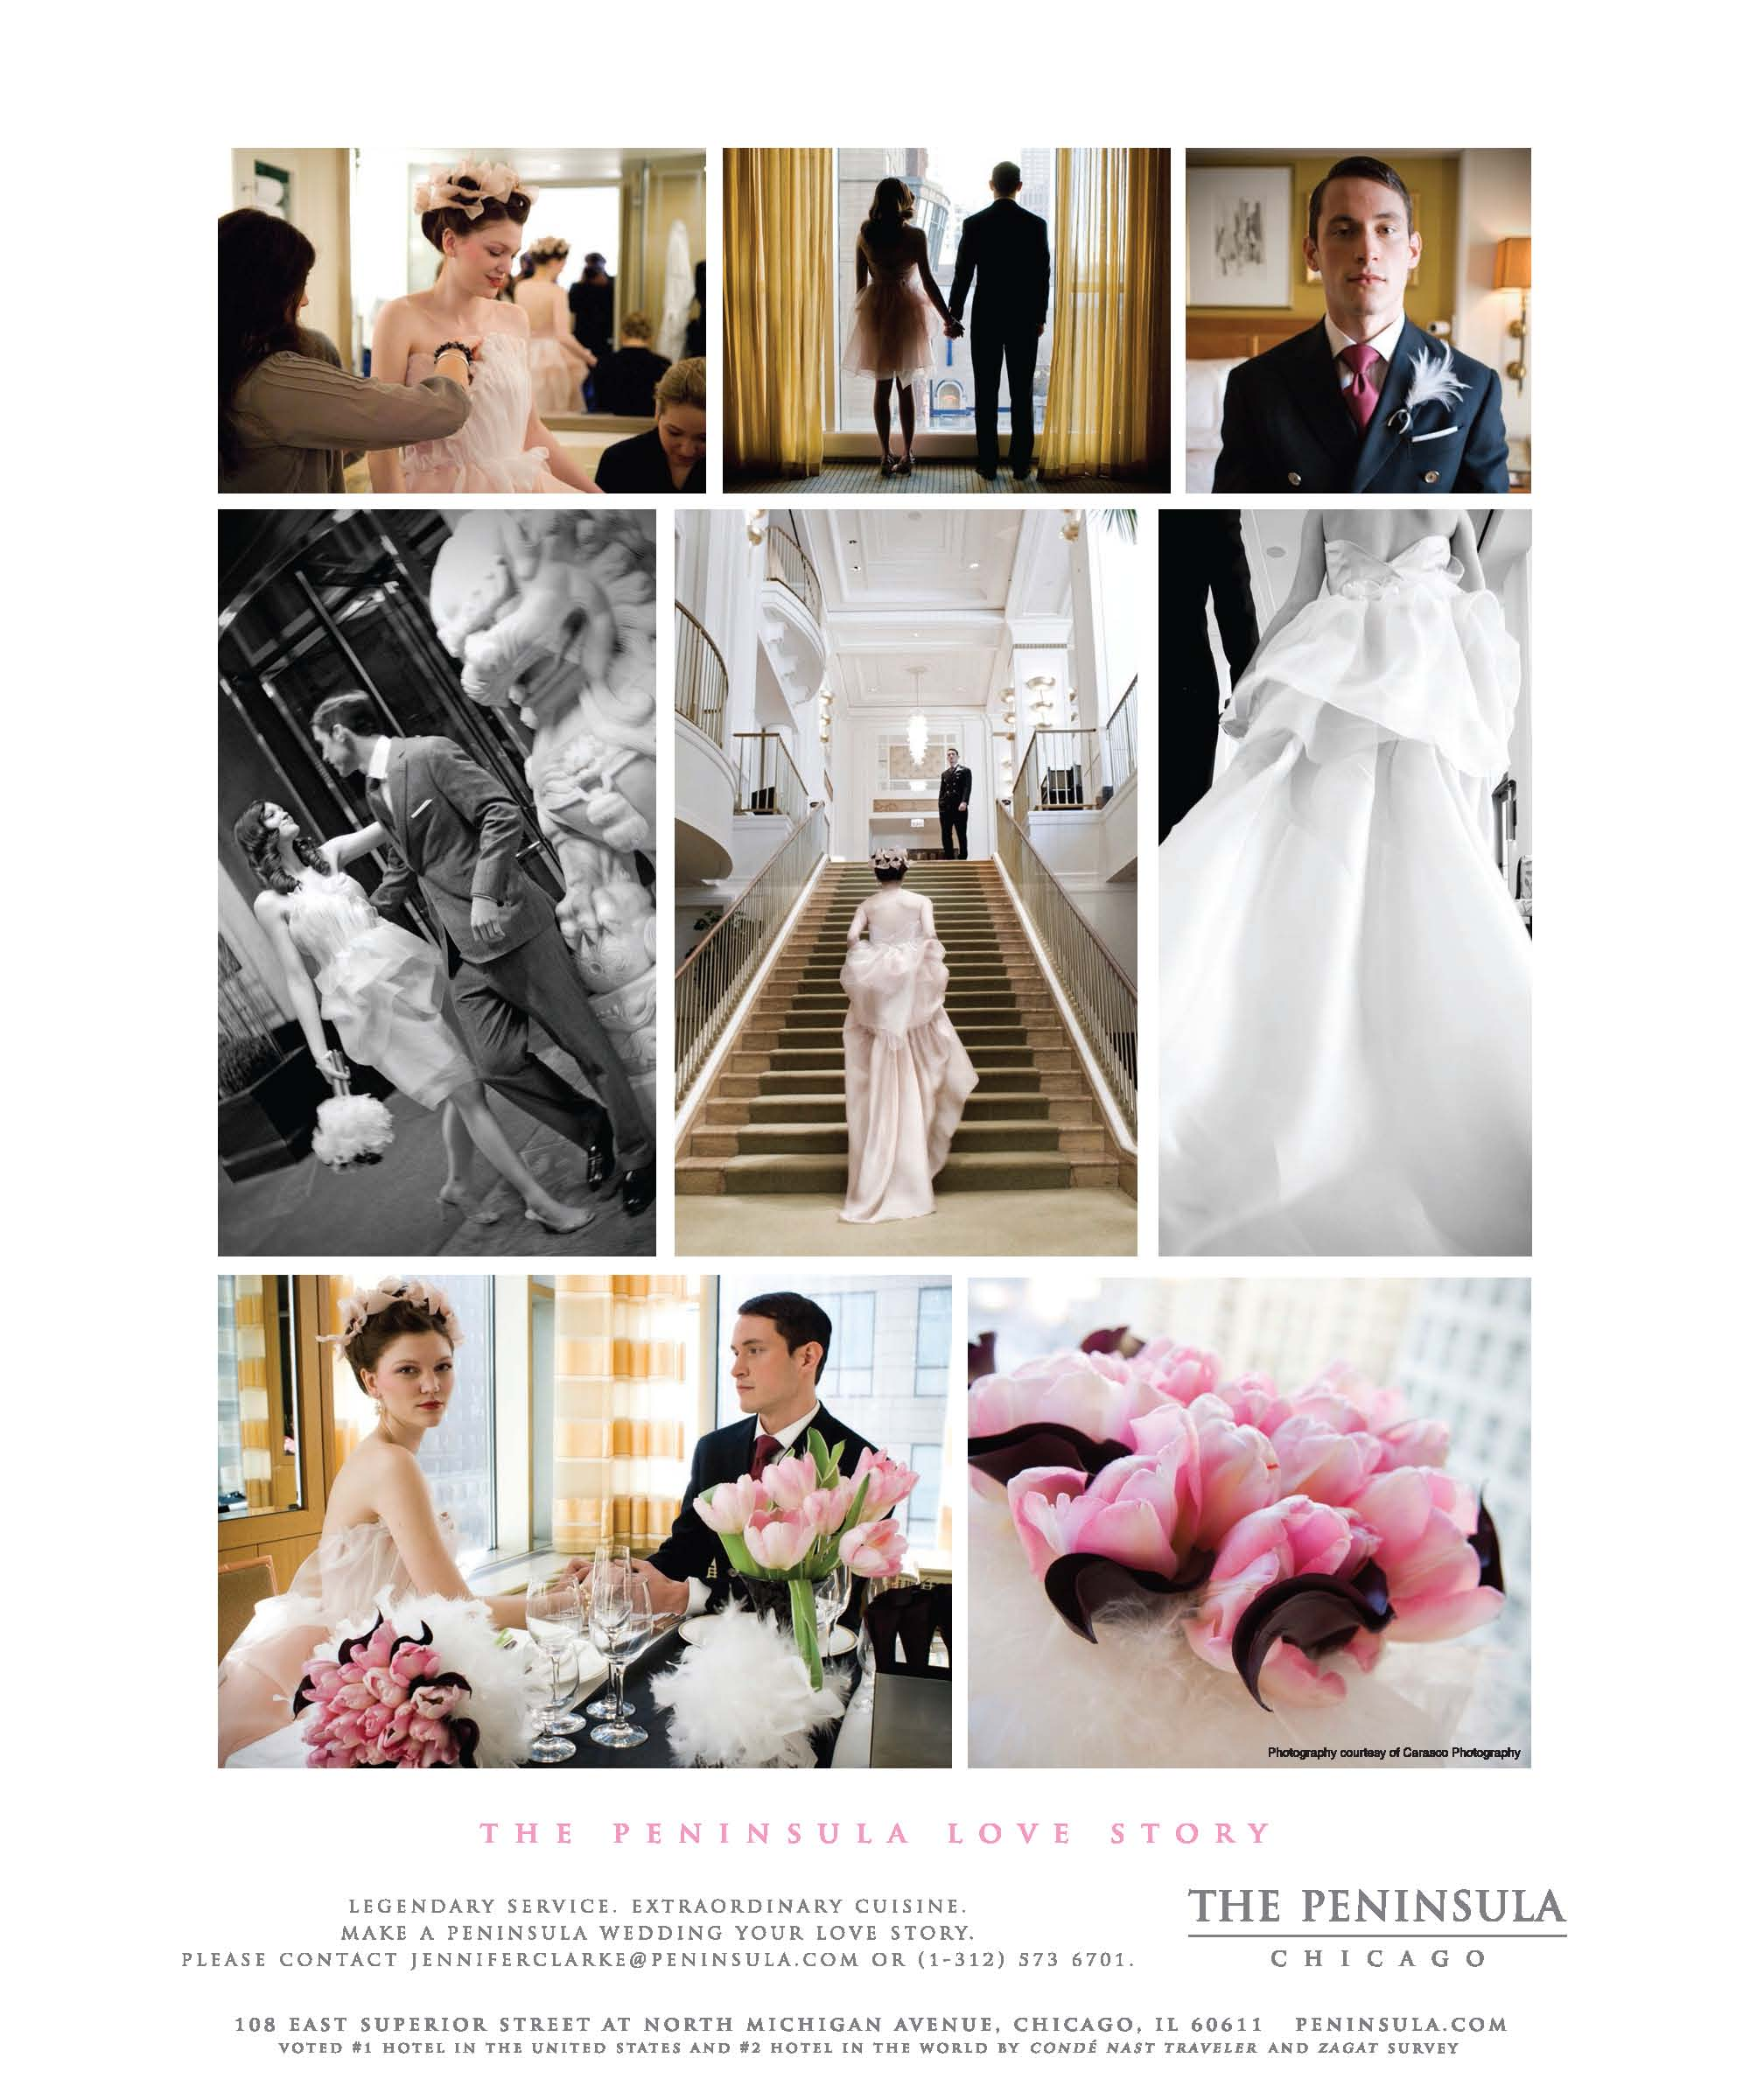 Peninsula Hotel Chicago - Custom Blush bridal gown